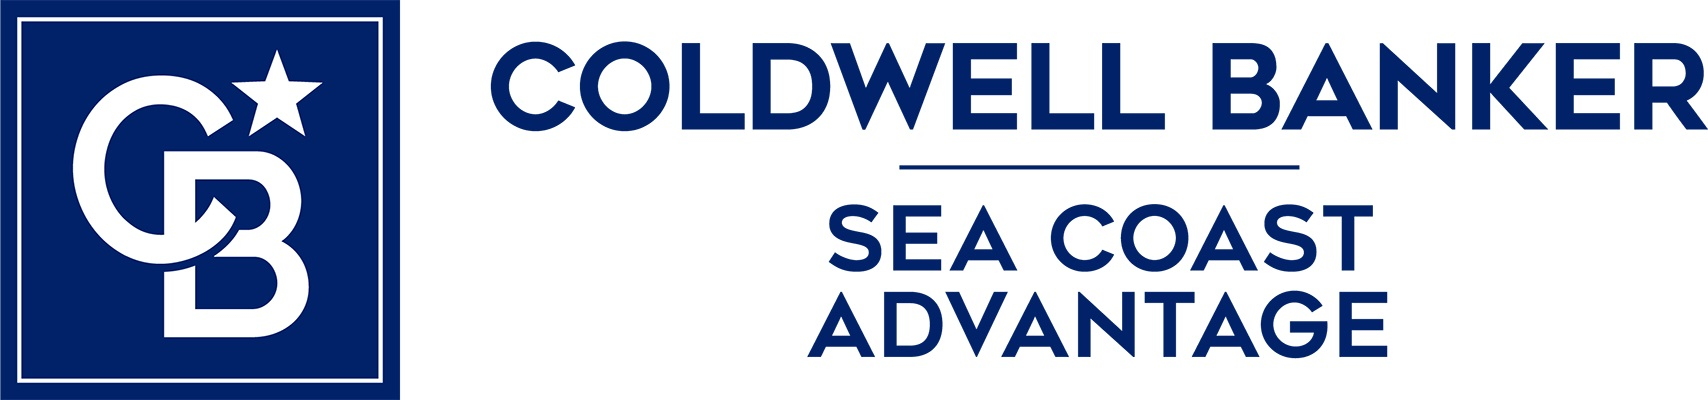 Michelle Gurrera - Coldwell Banker Sea Coast Advantage Realty